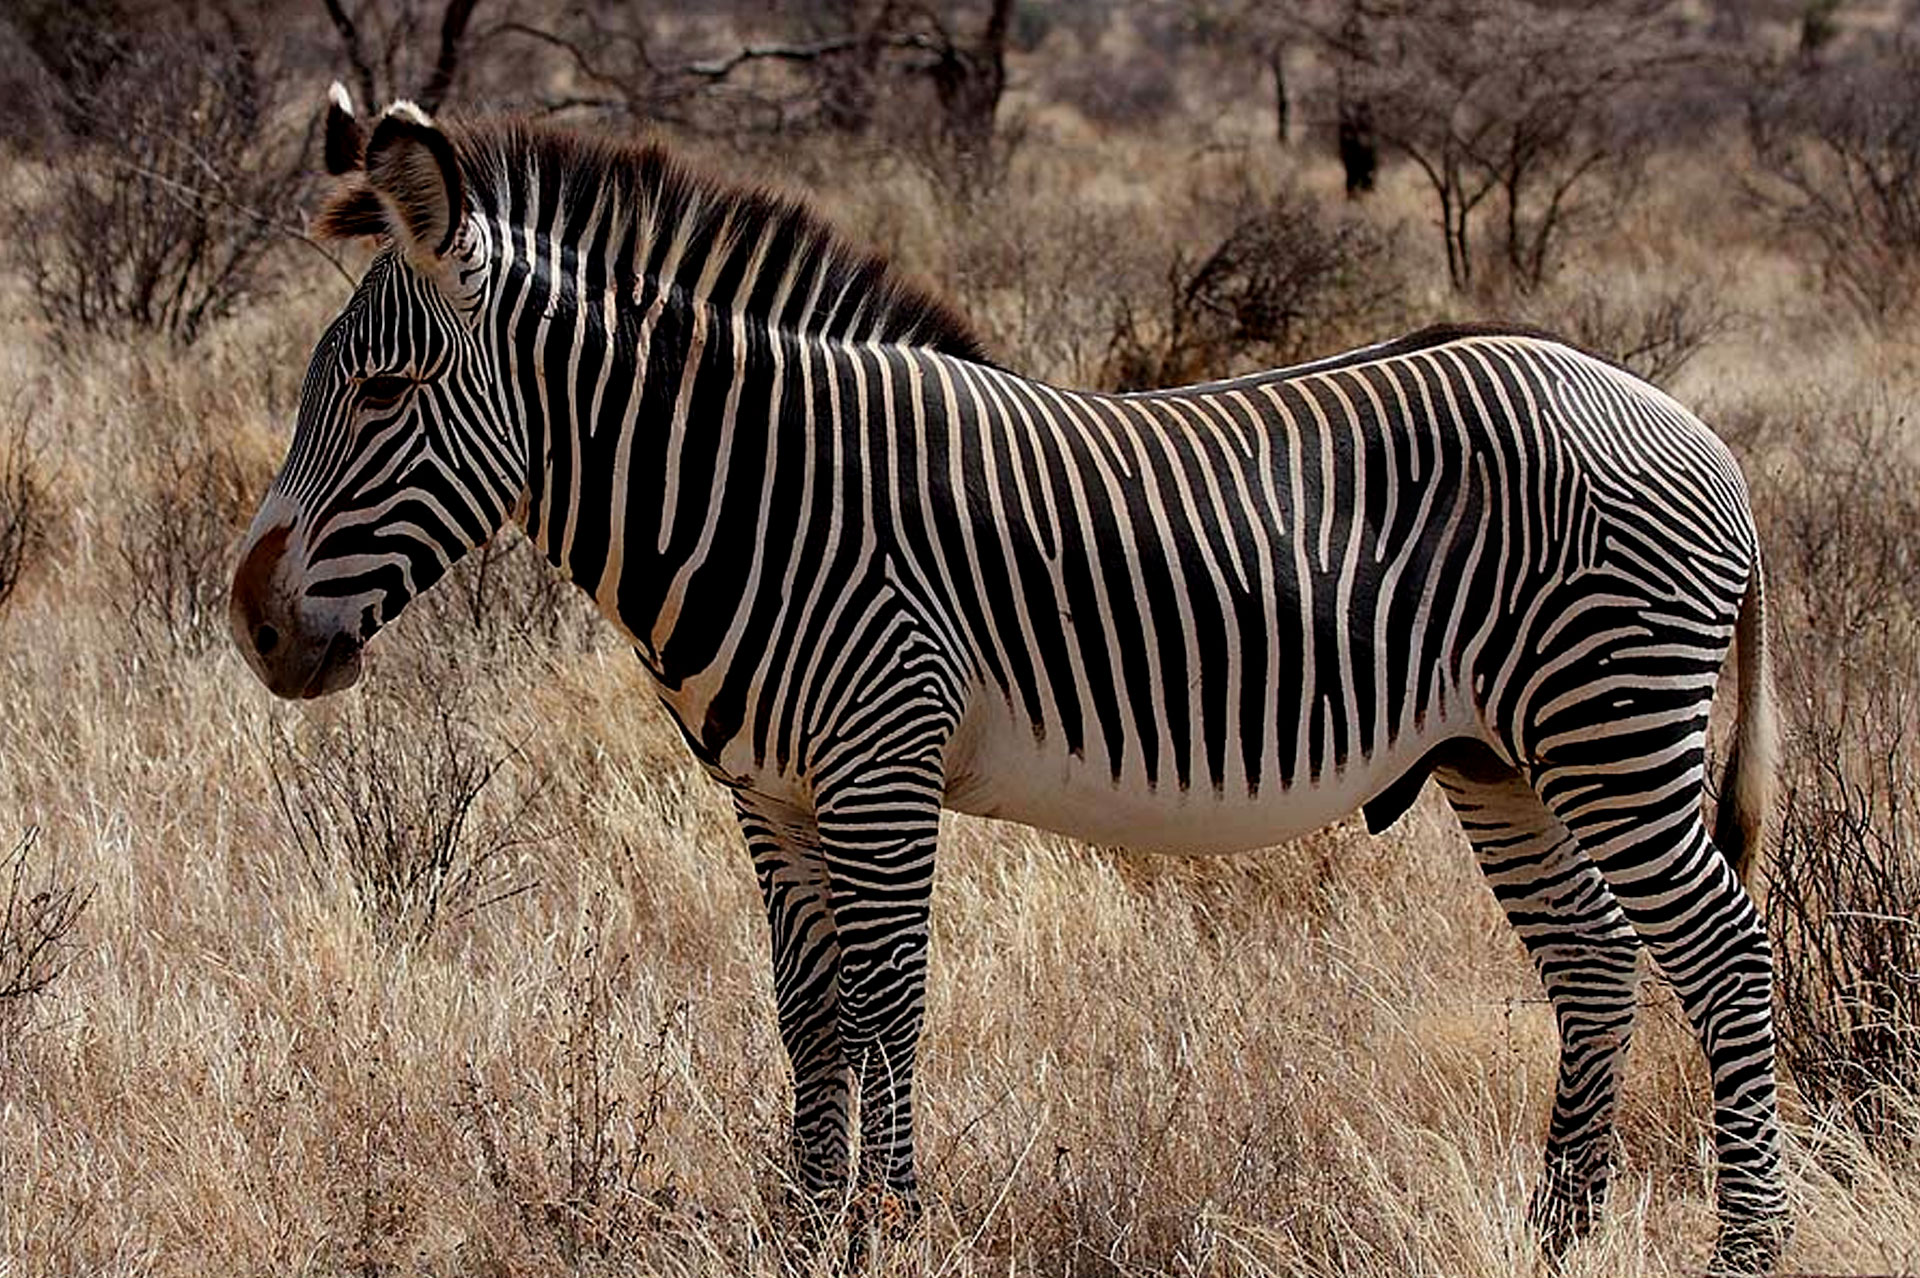 Diani_Travel_center_National_Parks_in_Kenya_Sibiloi_National_Park_image_1_zebra